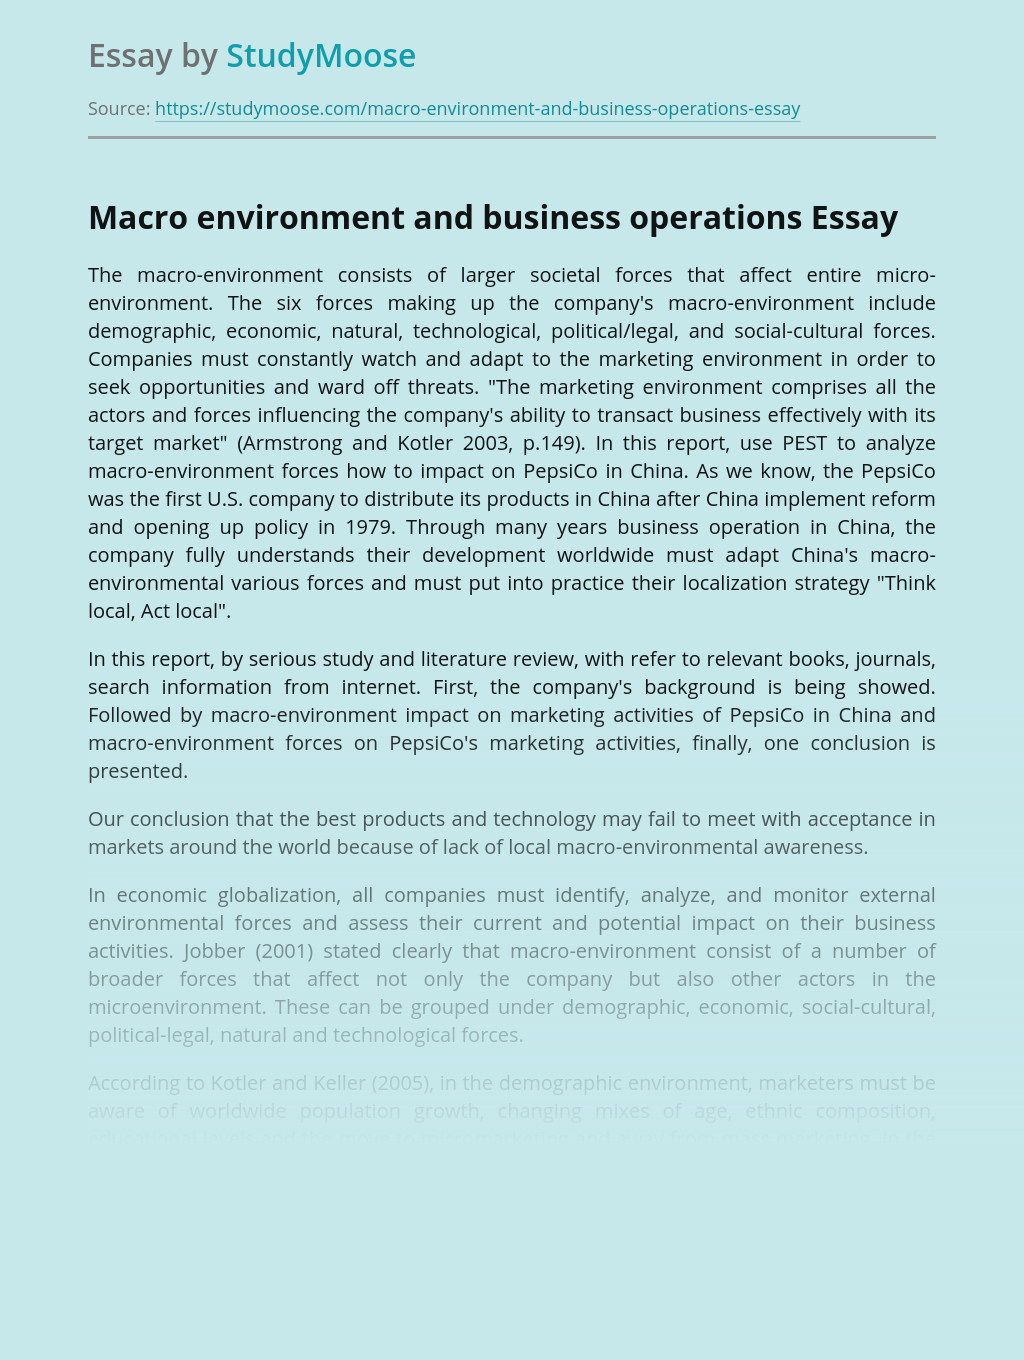 Macro environment and business operations